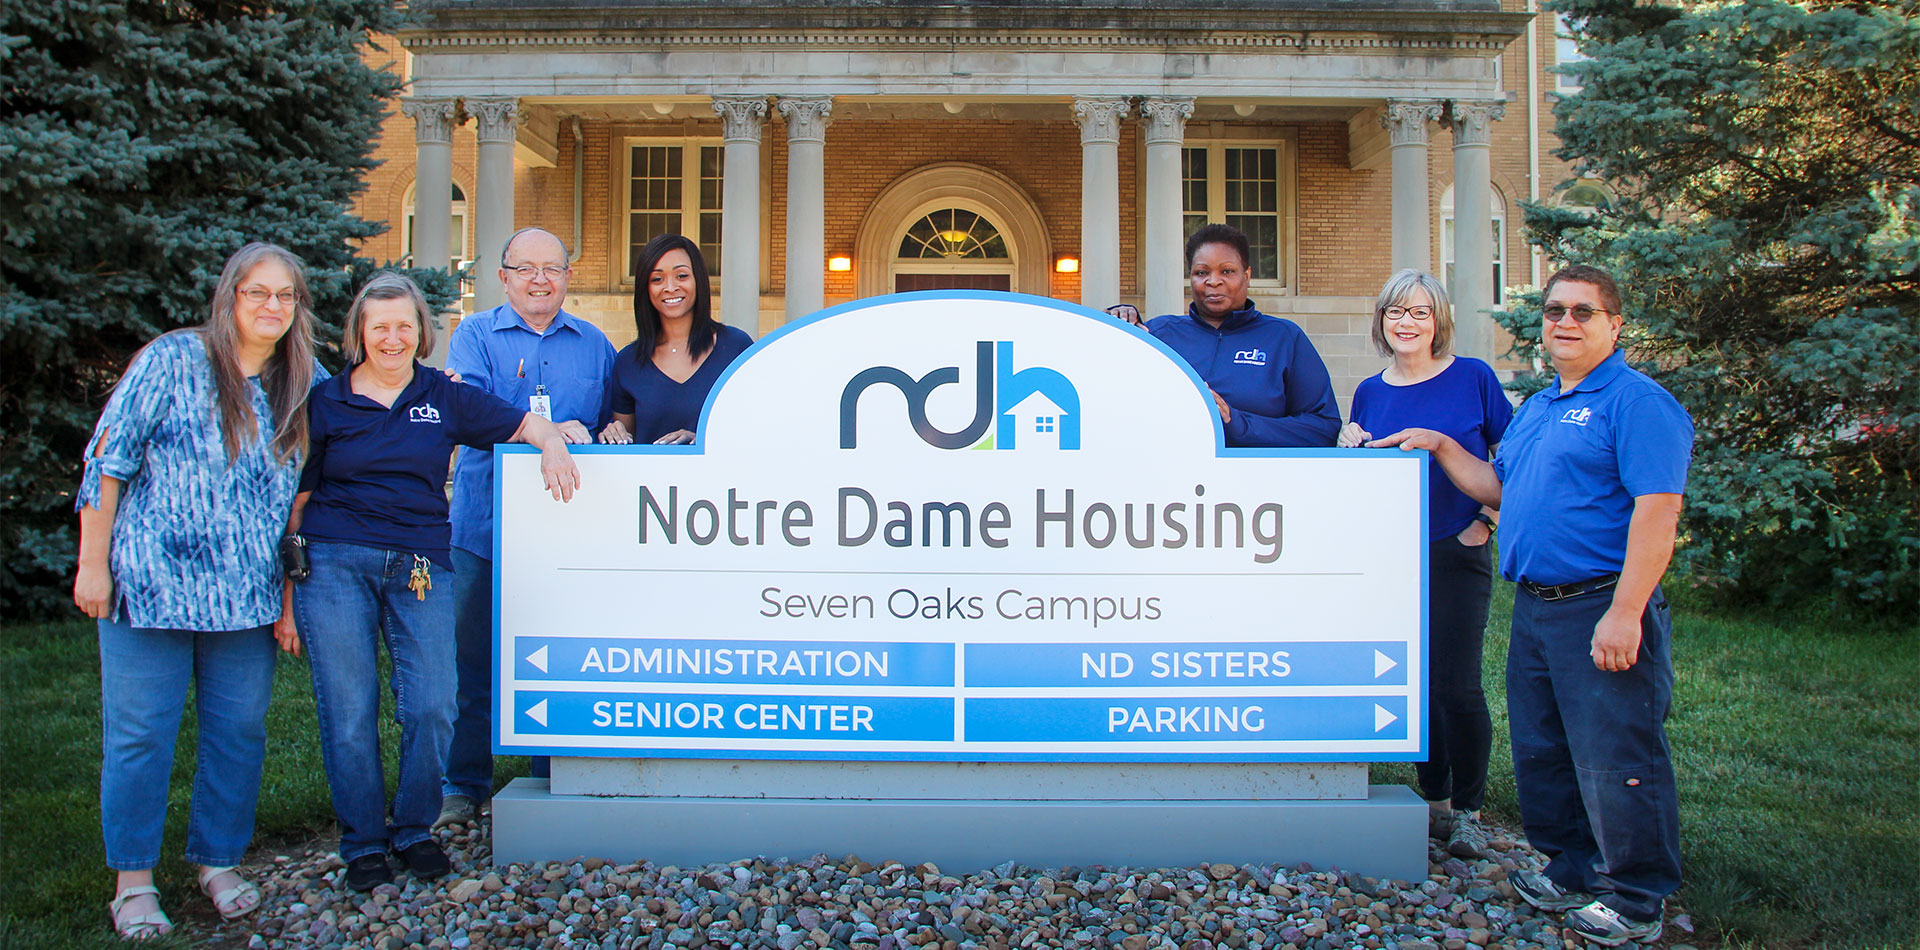 ndh staff standing by exterior sign